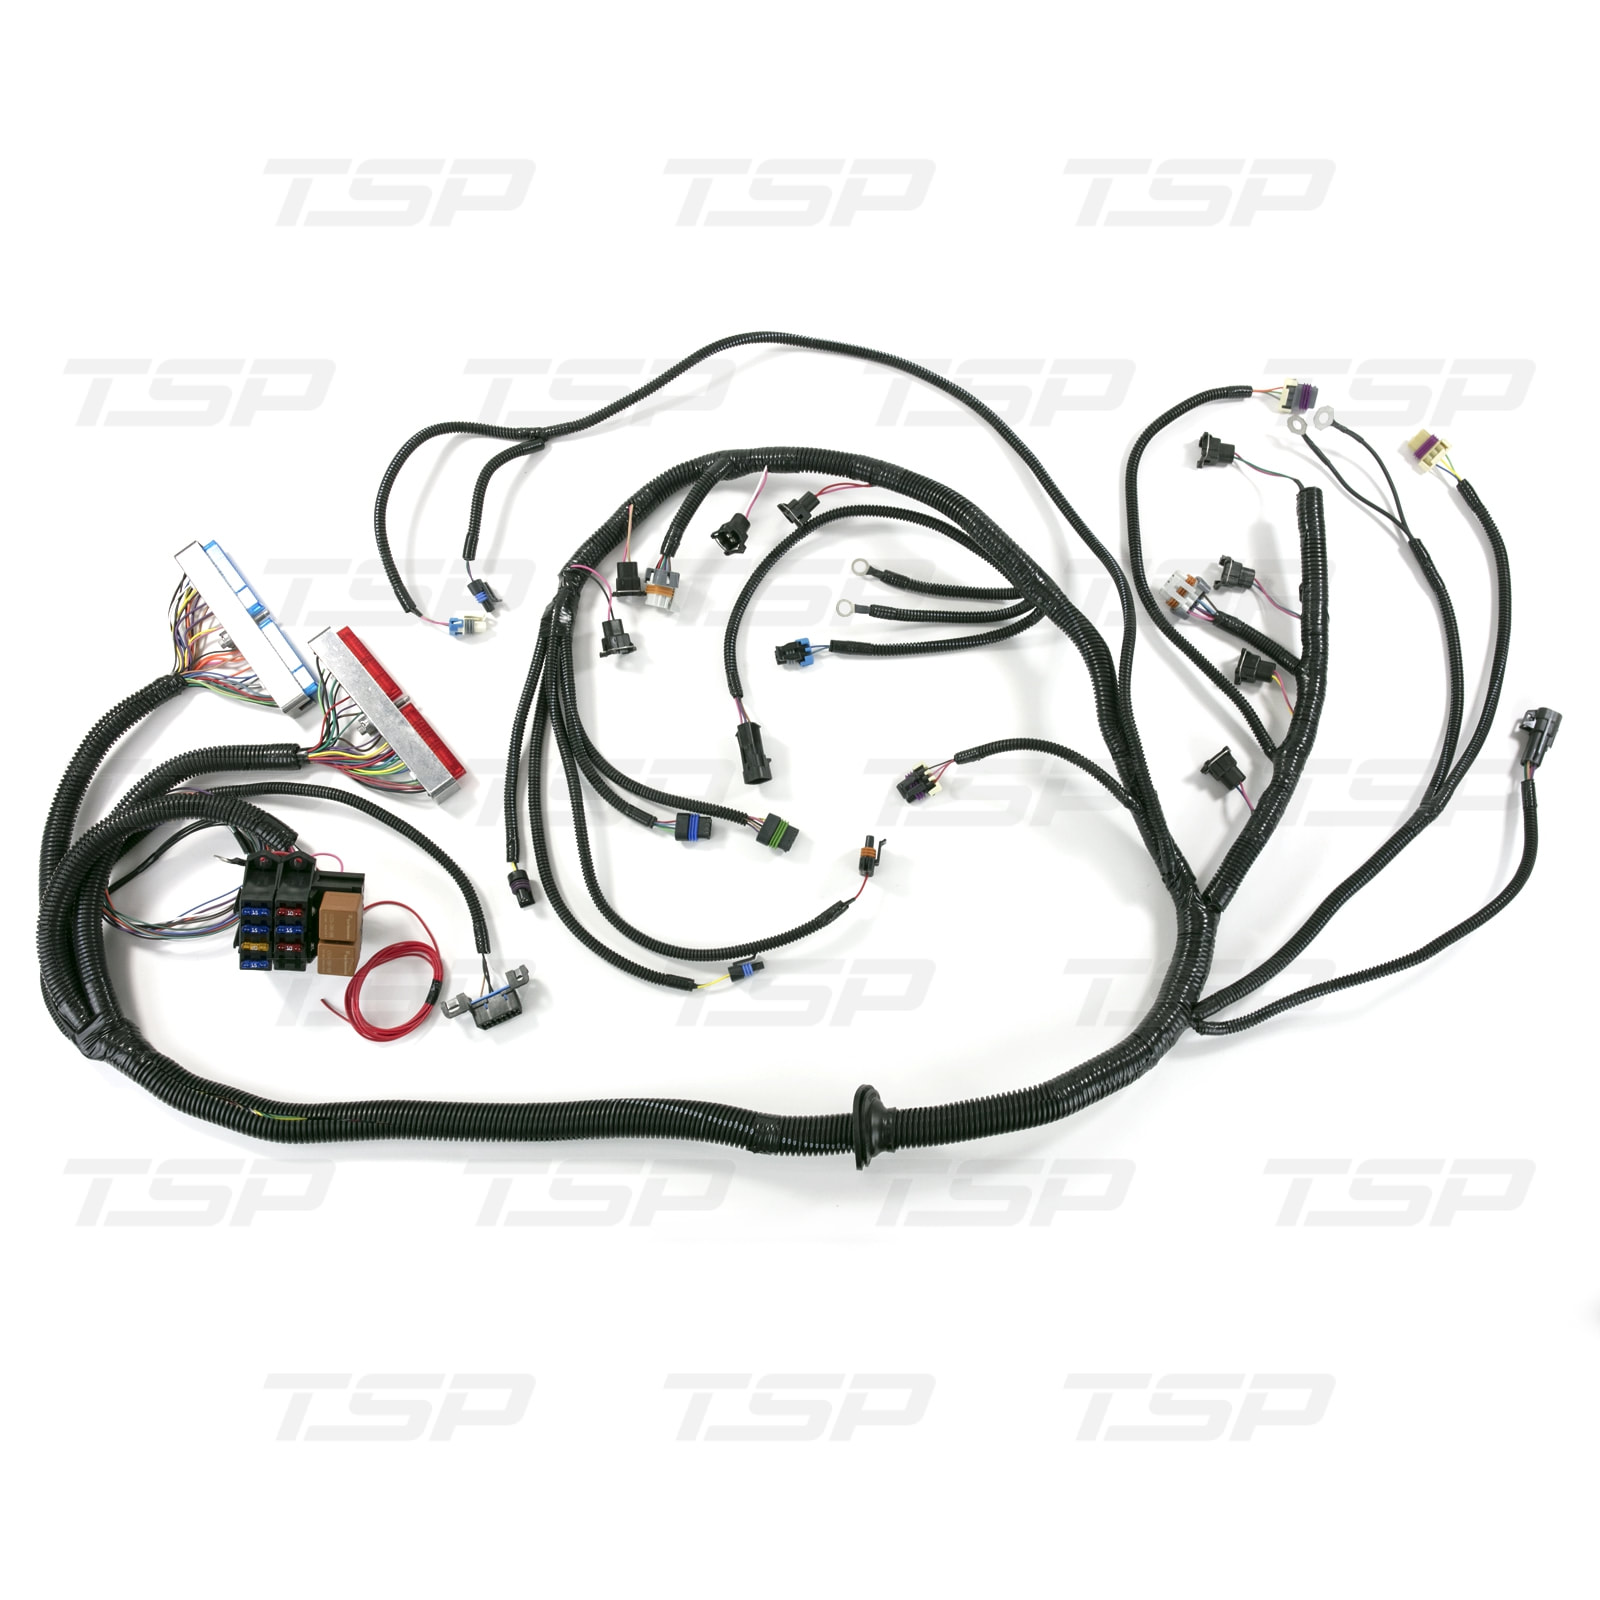 Standalone Wiring Harness For Drive By Cable Ls1 With